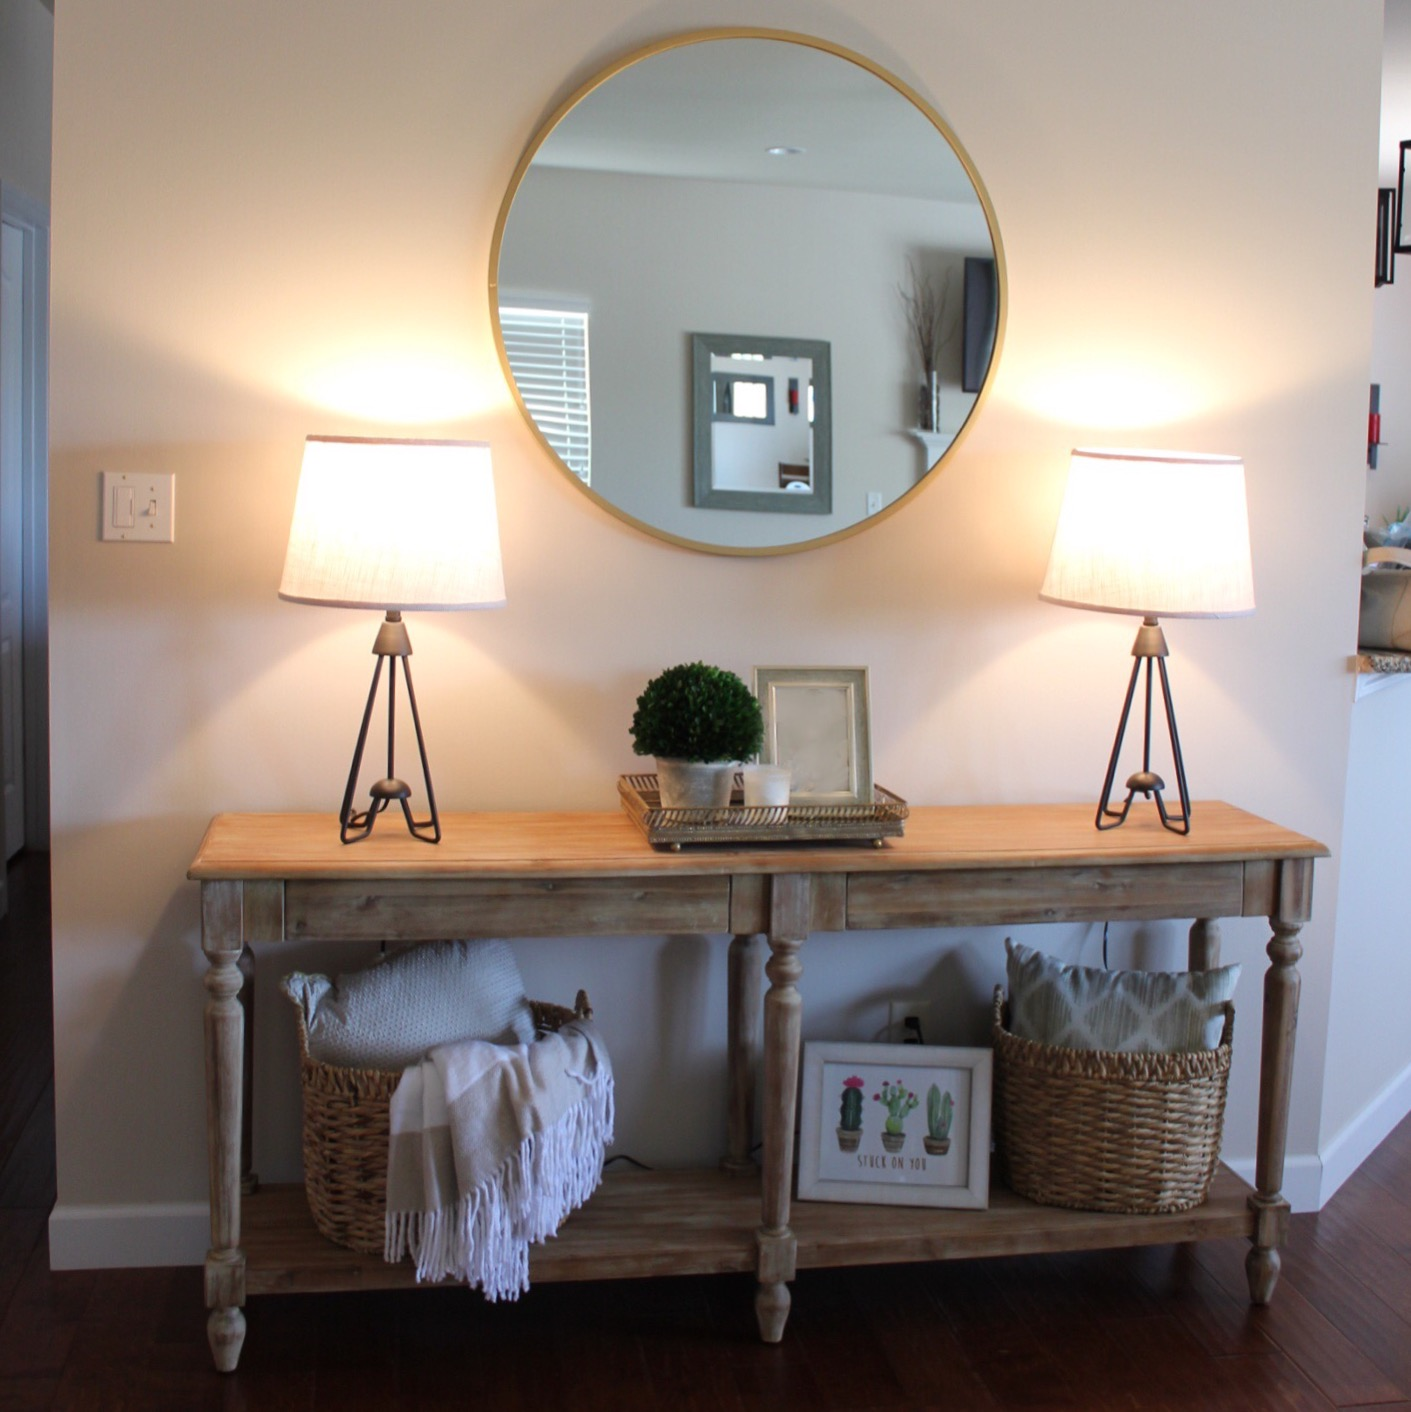 Stylin In St. Louis: Home Decor: Before/After…